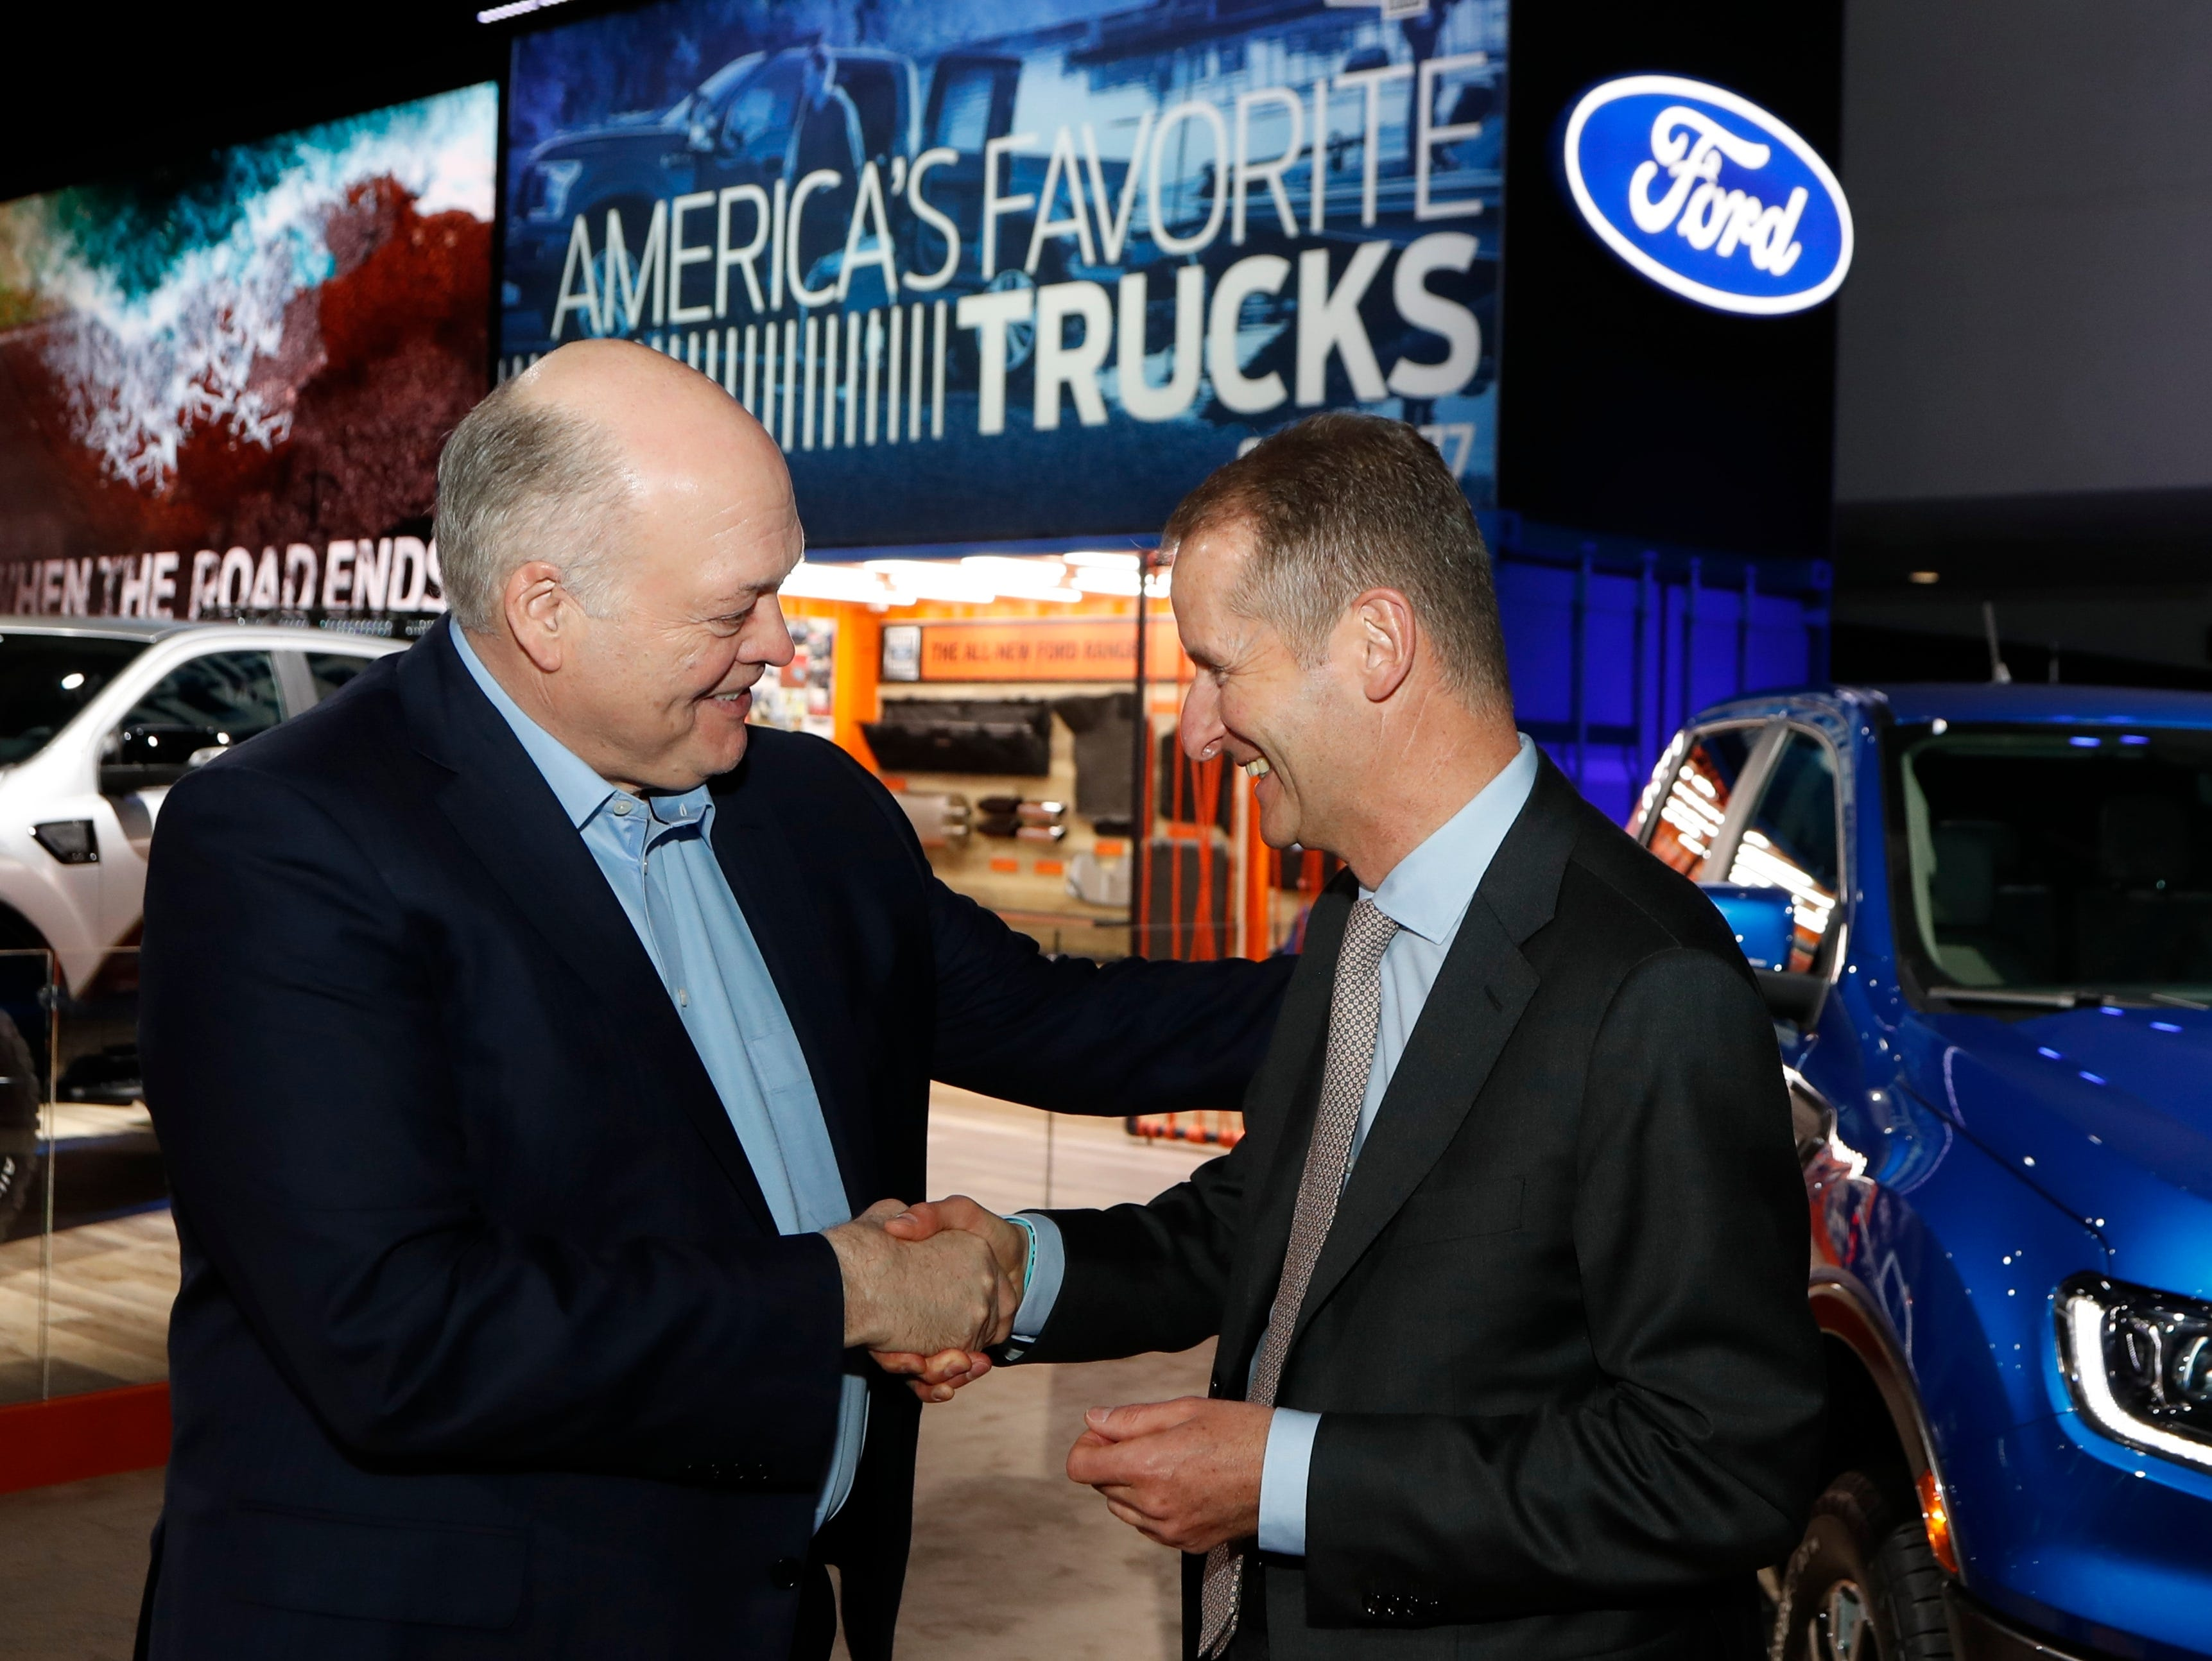 Ford Motor Co. President and CEO Jim Hackett, left, meets with Herbert Diess, CEO of Volkswagen AG, Monday, Jan. 14, 2019, at the North American International Auto Show in Detroit.